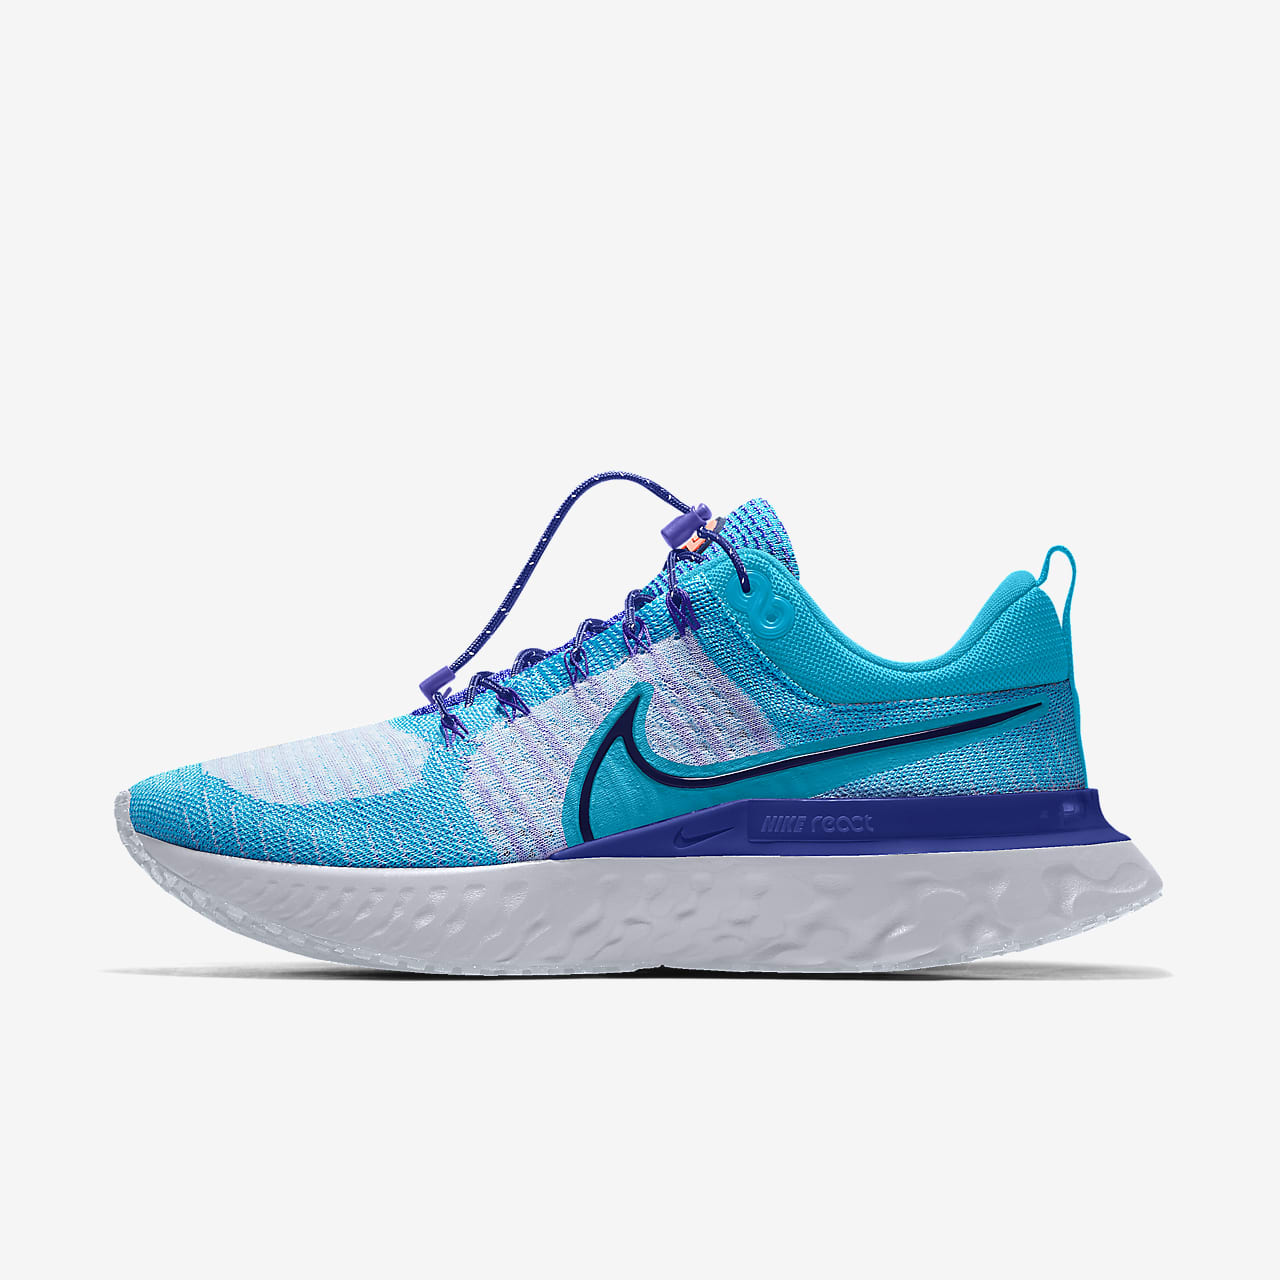 Chaussure de running personnalisable Nike React Infinity Run Flyknit 2 By You